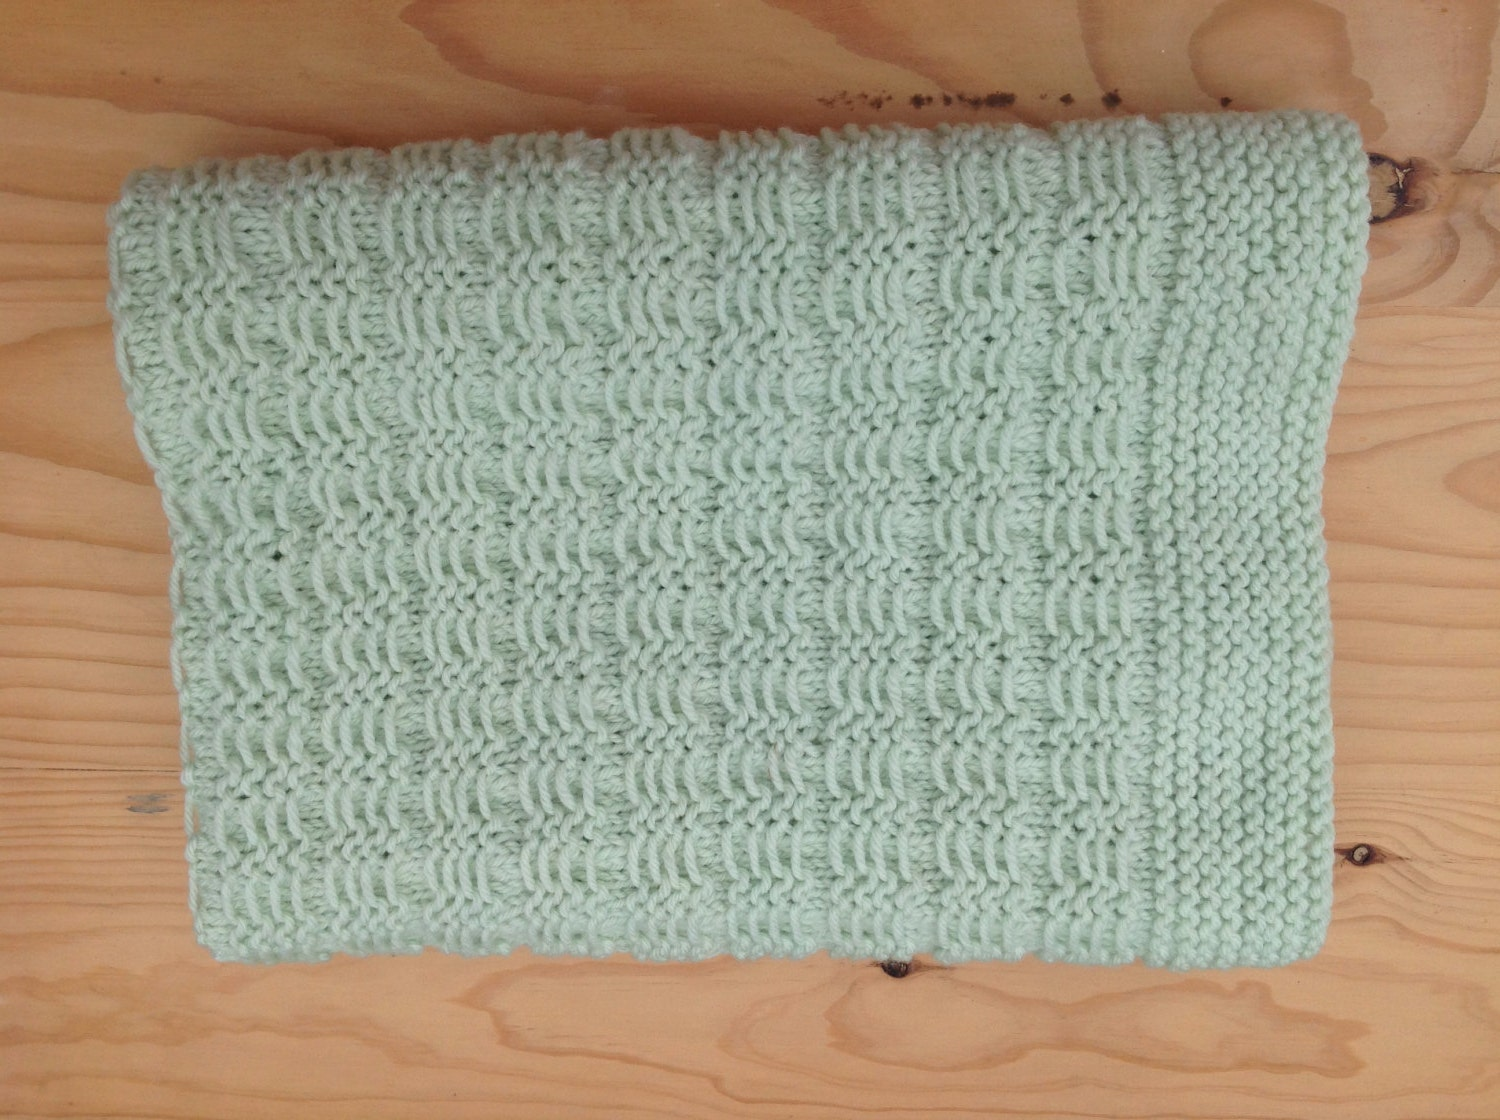 Slip Stitch Knitting Baby Blanket Pattern : Slip stitch baby blanket knee rug merino wool. Hand knit.